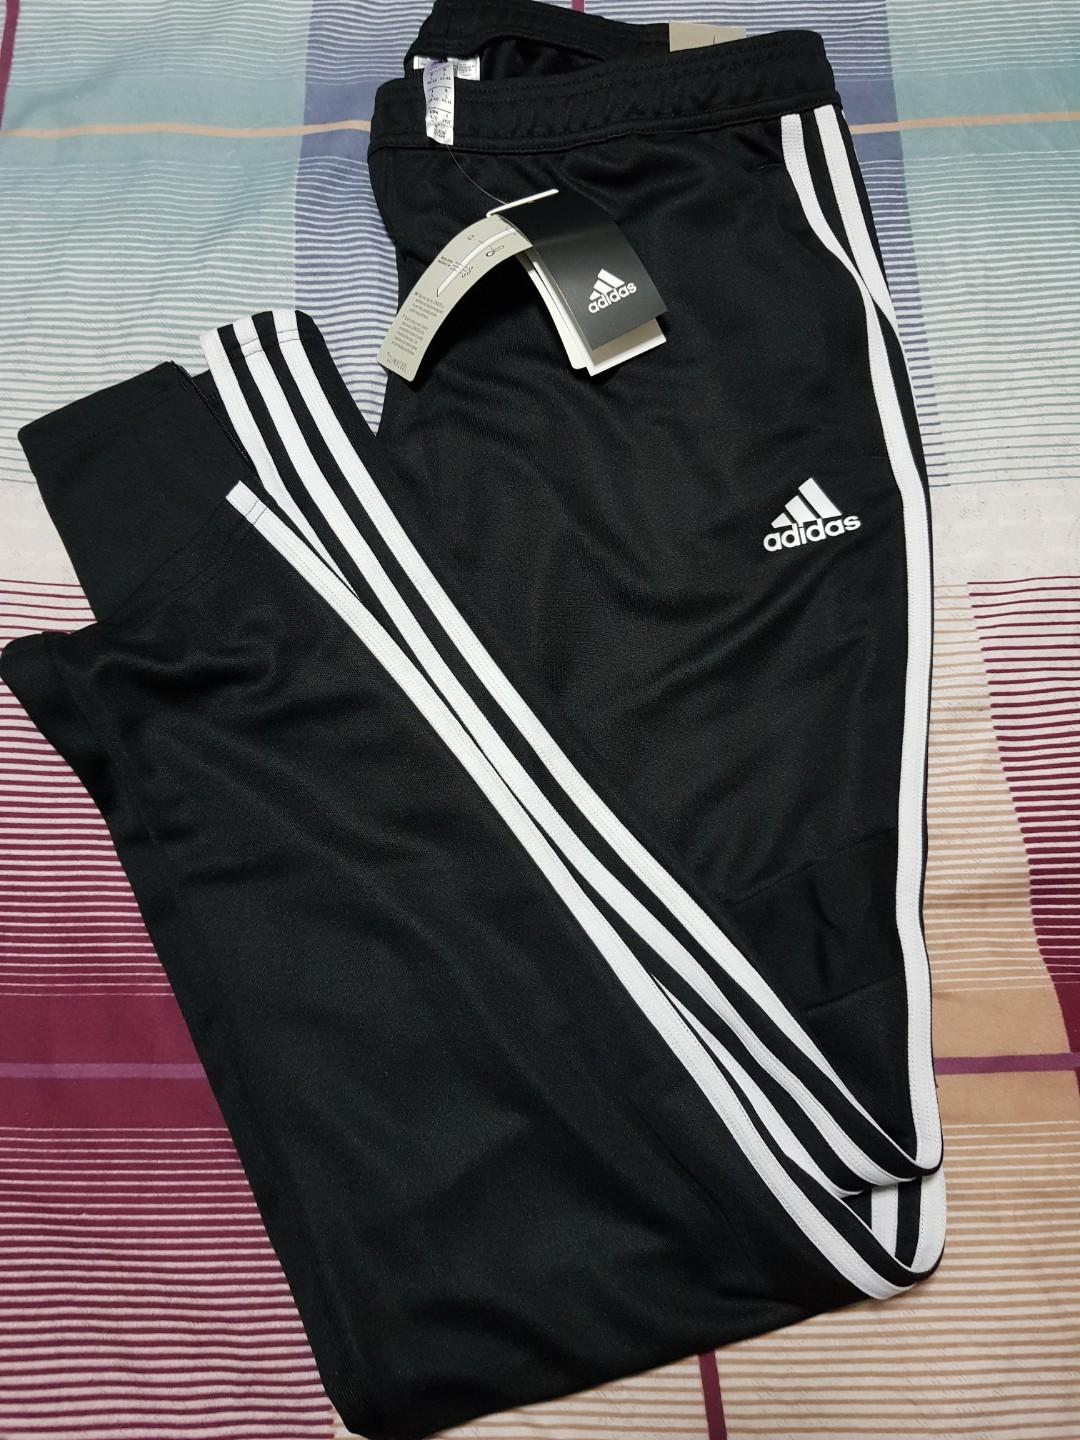 Adidas Trackpants, Sports, Sports Apparel on Carousell